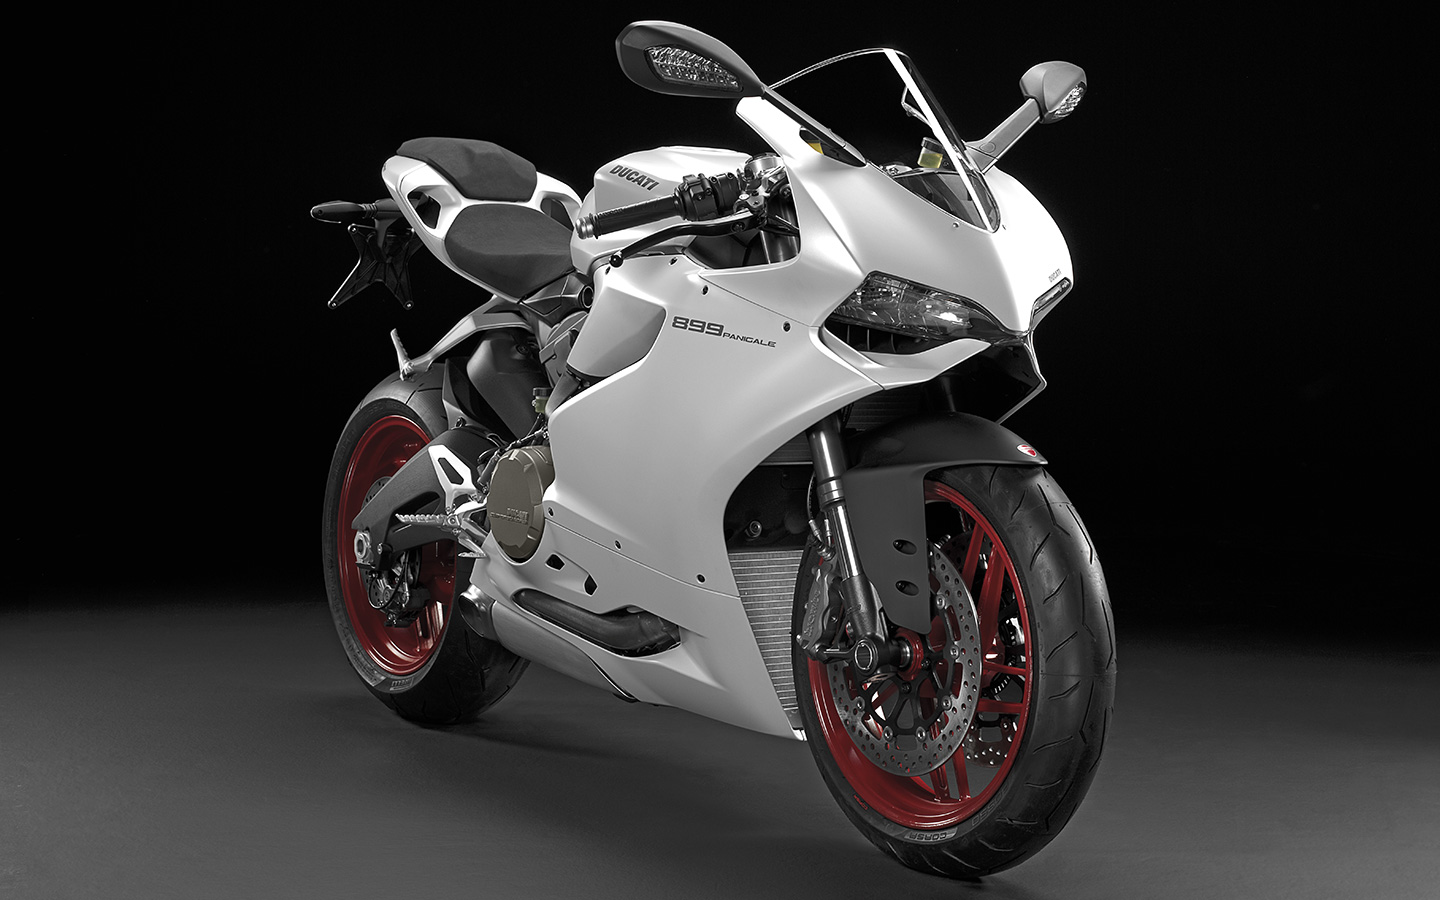 ducati 899 panigale hd wallpapers   DriverLayer Search Engine 1440x900